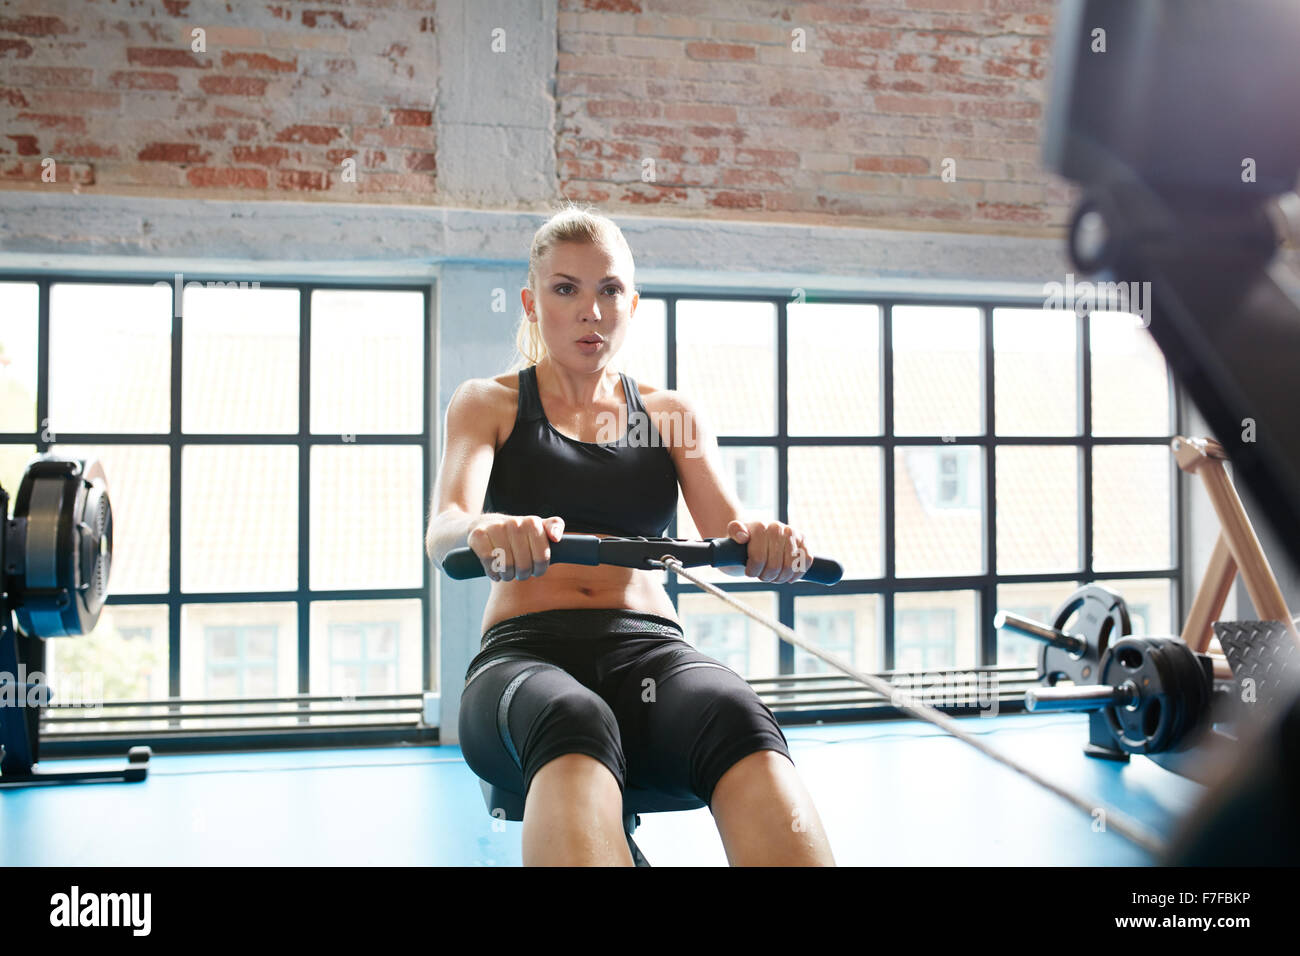 Caucasian female using rowing machine in the gym. Young woman doing cardio workout in fitness club. - Stock Image